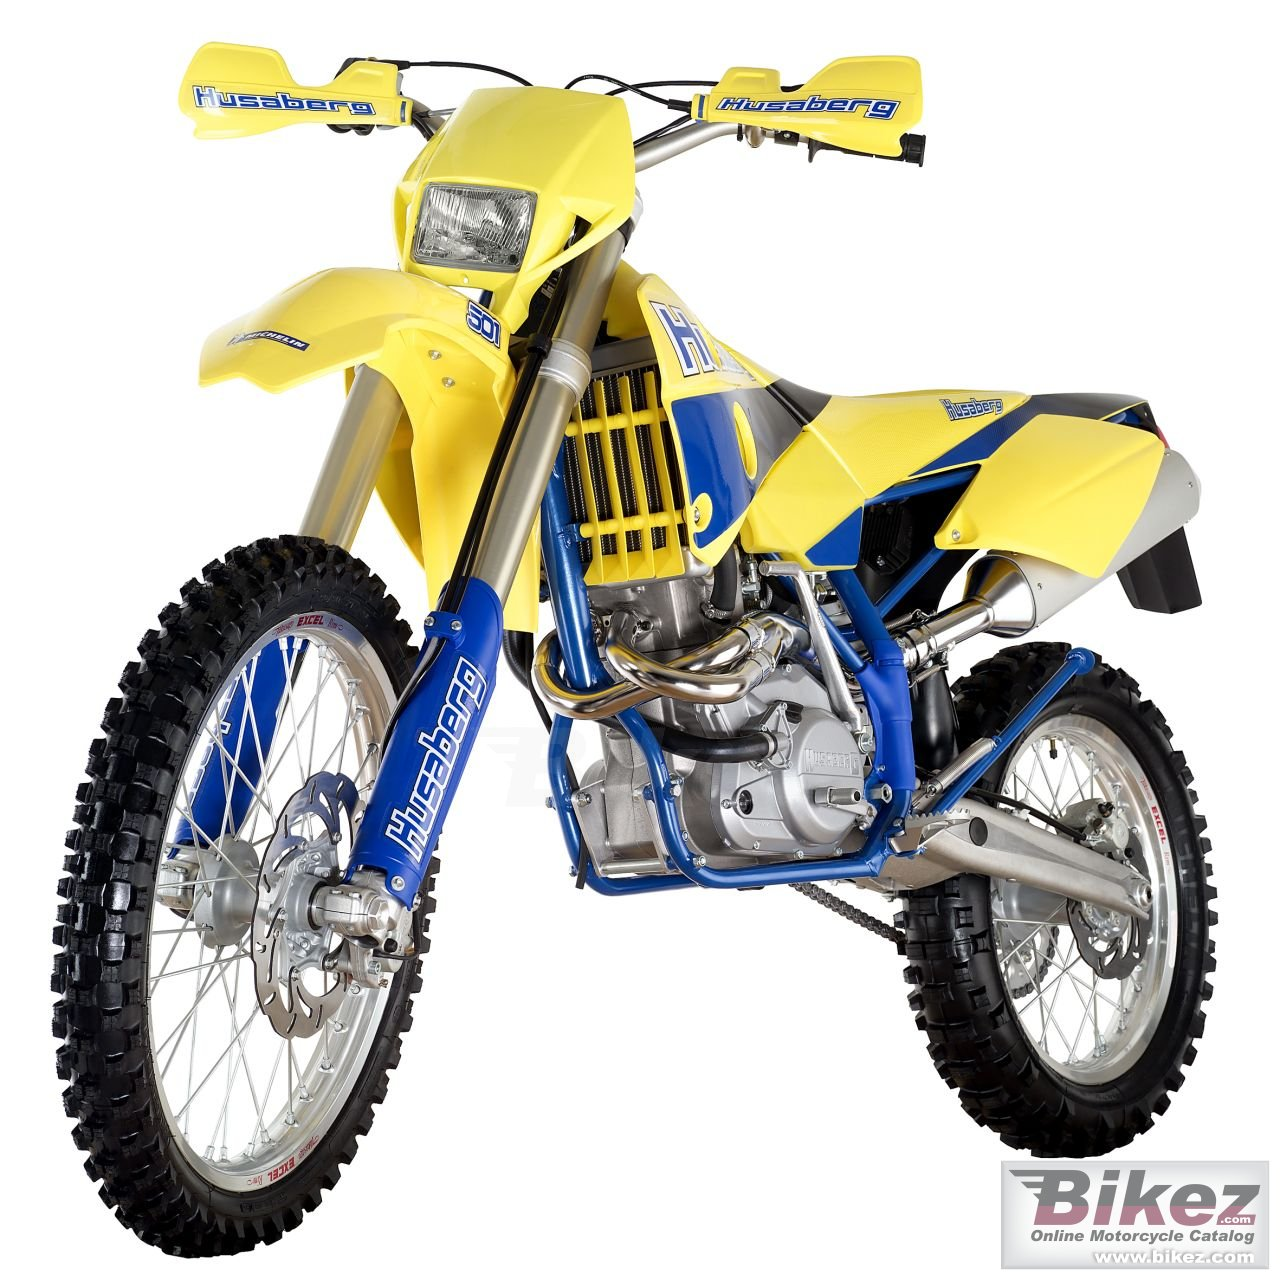 Big Husaberg fe 501 e picture and wallpaper from Bikez.com